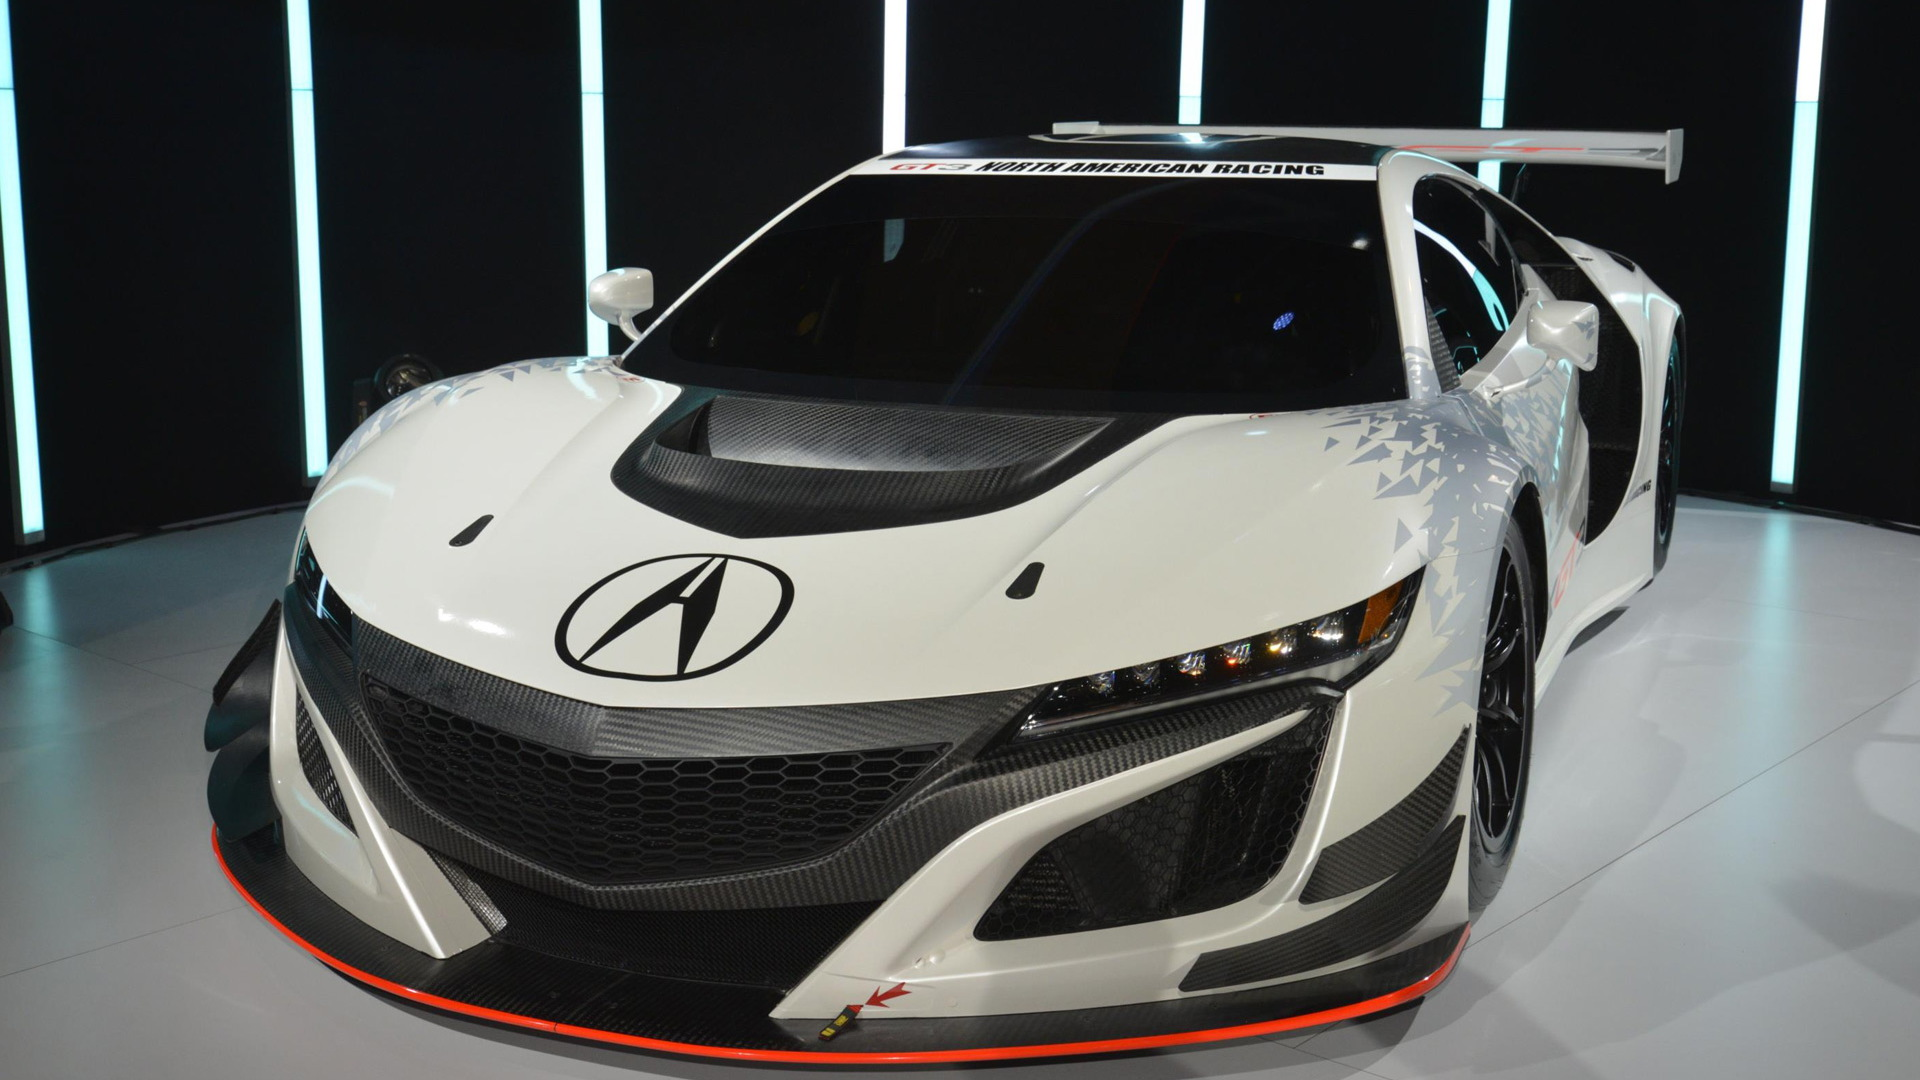 2017 Acura NSX GT3 race car, 2016 New York Auto Show